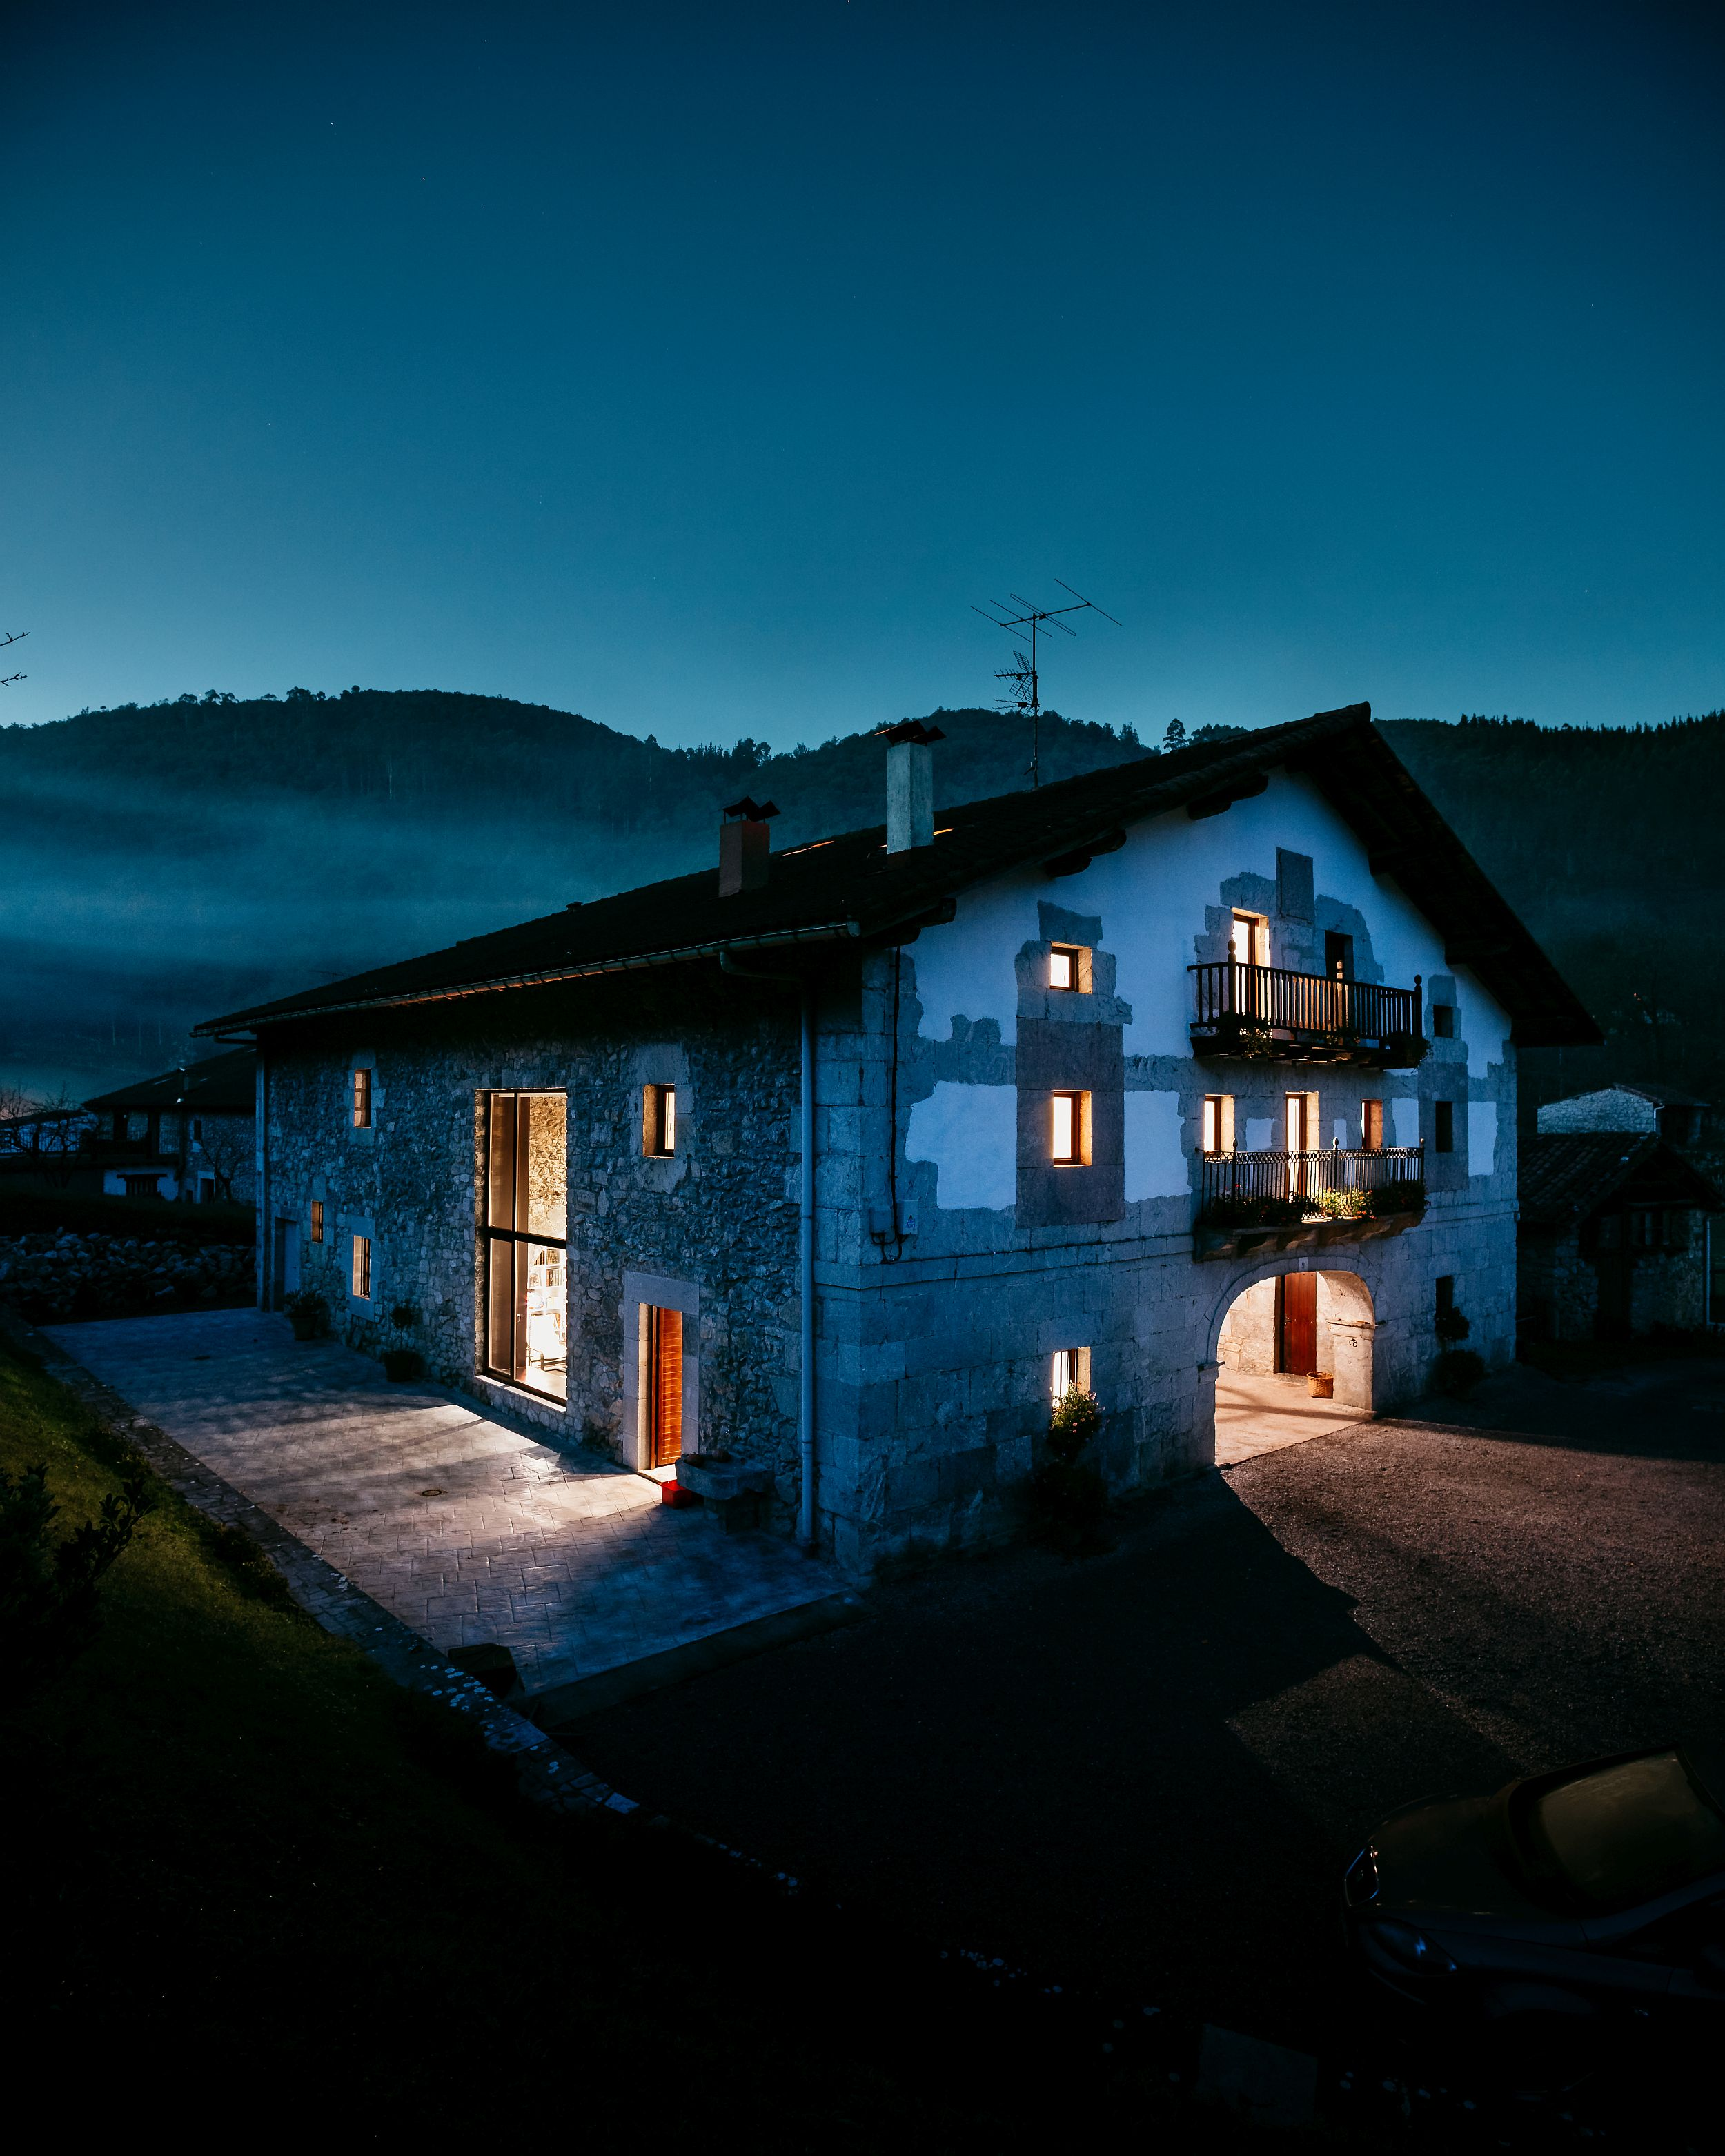 150-year old traditional Basque house in Spain turned into modern family home